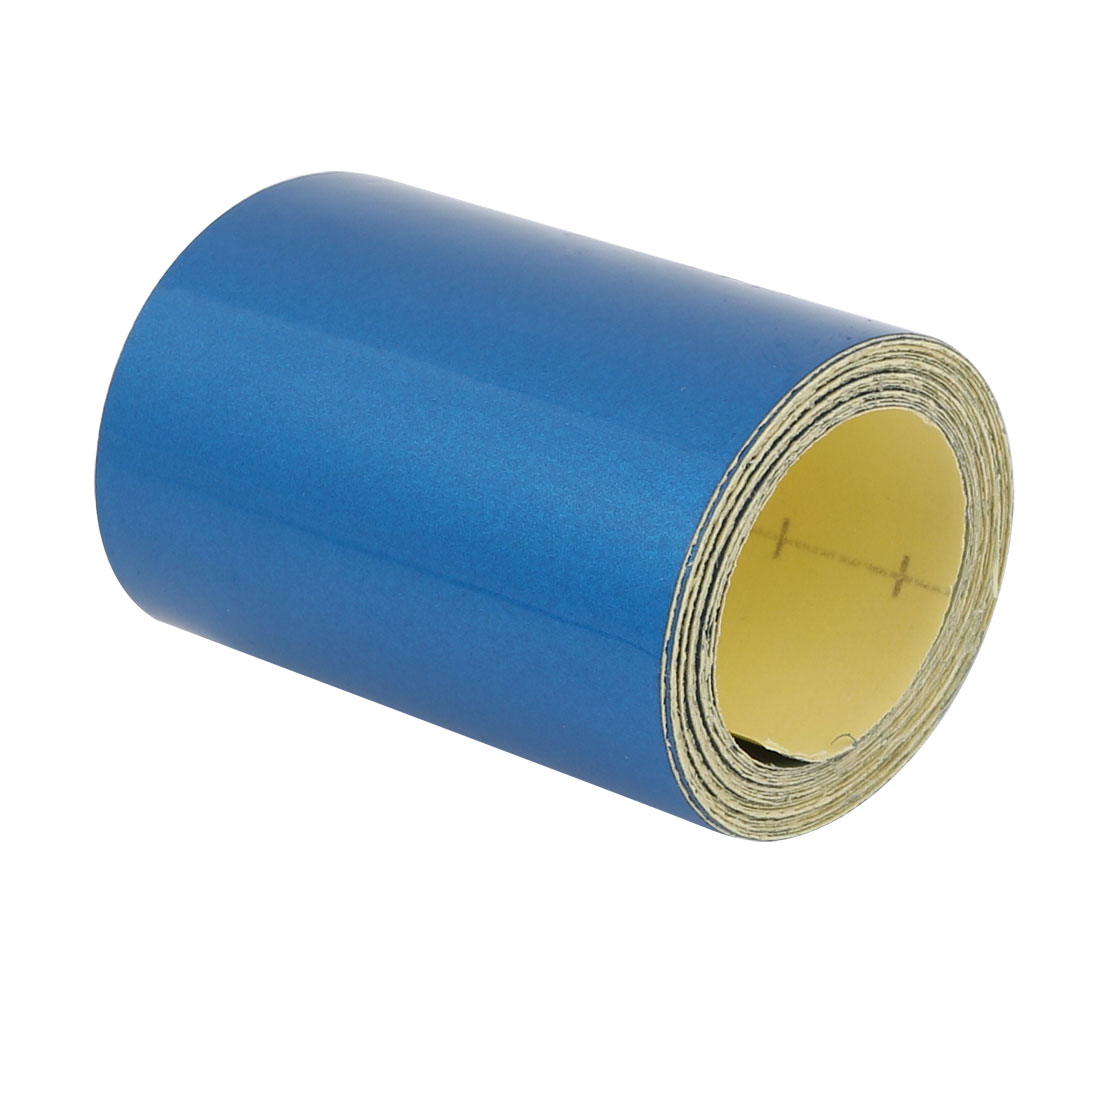 5cm Width 2 Meters Length Single Sided Adhesive Reflective Warning Tape Blue